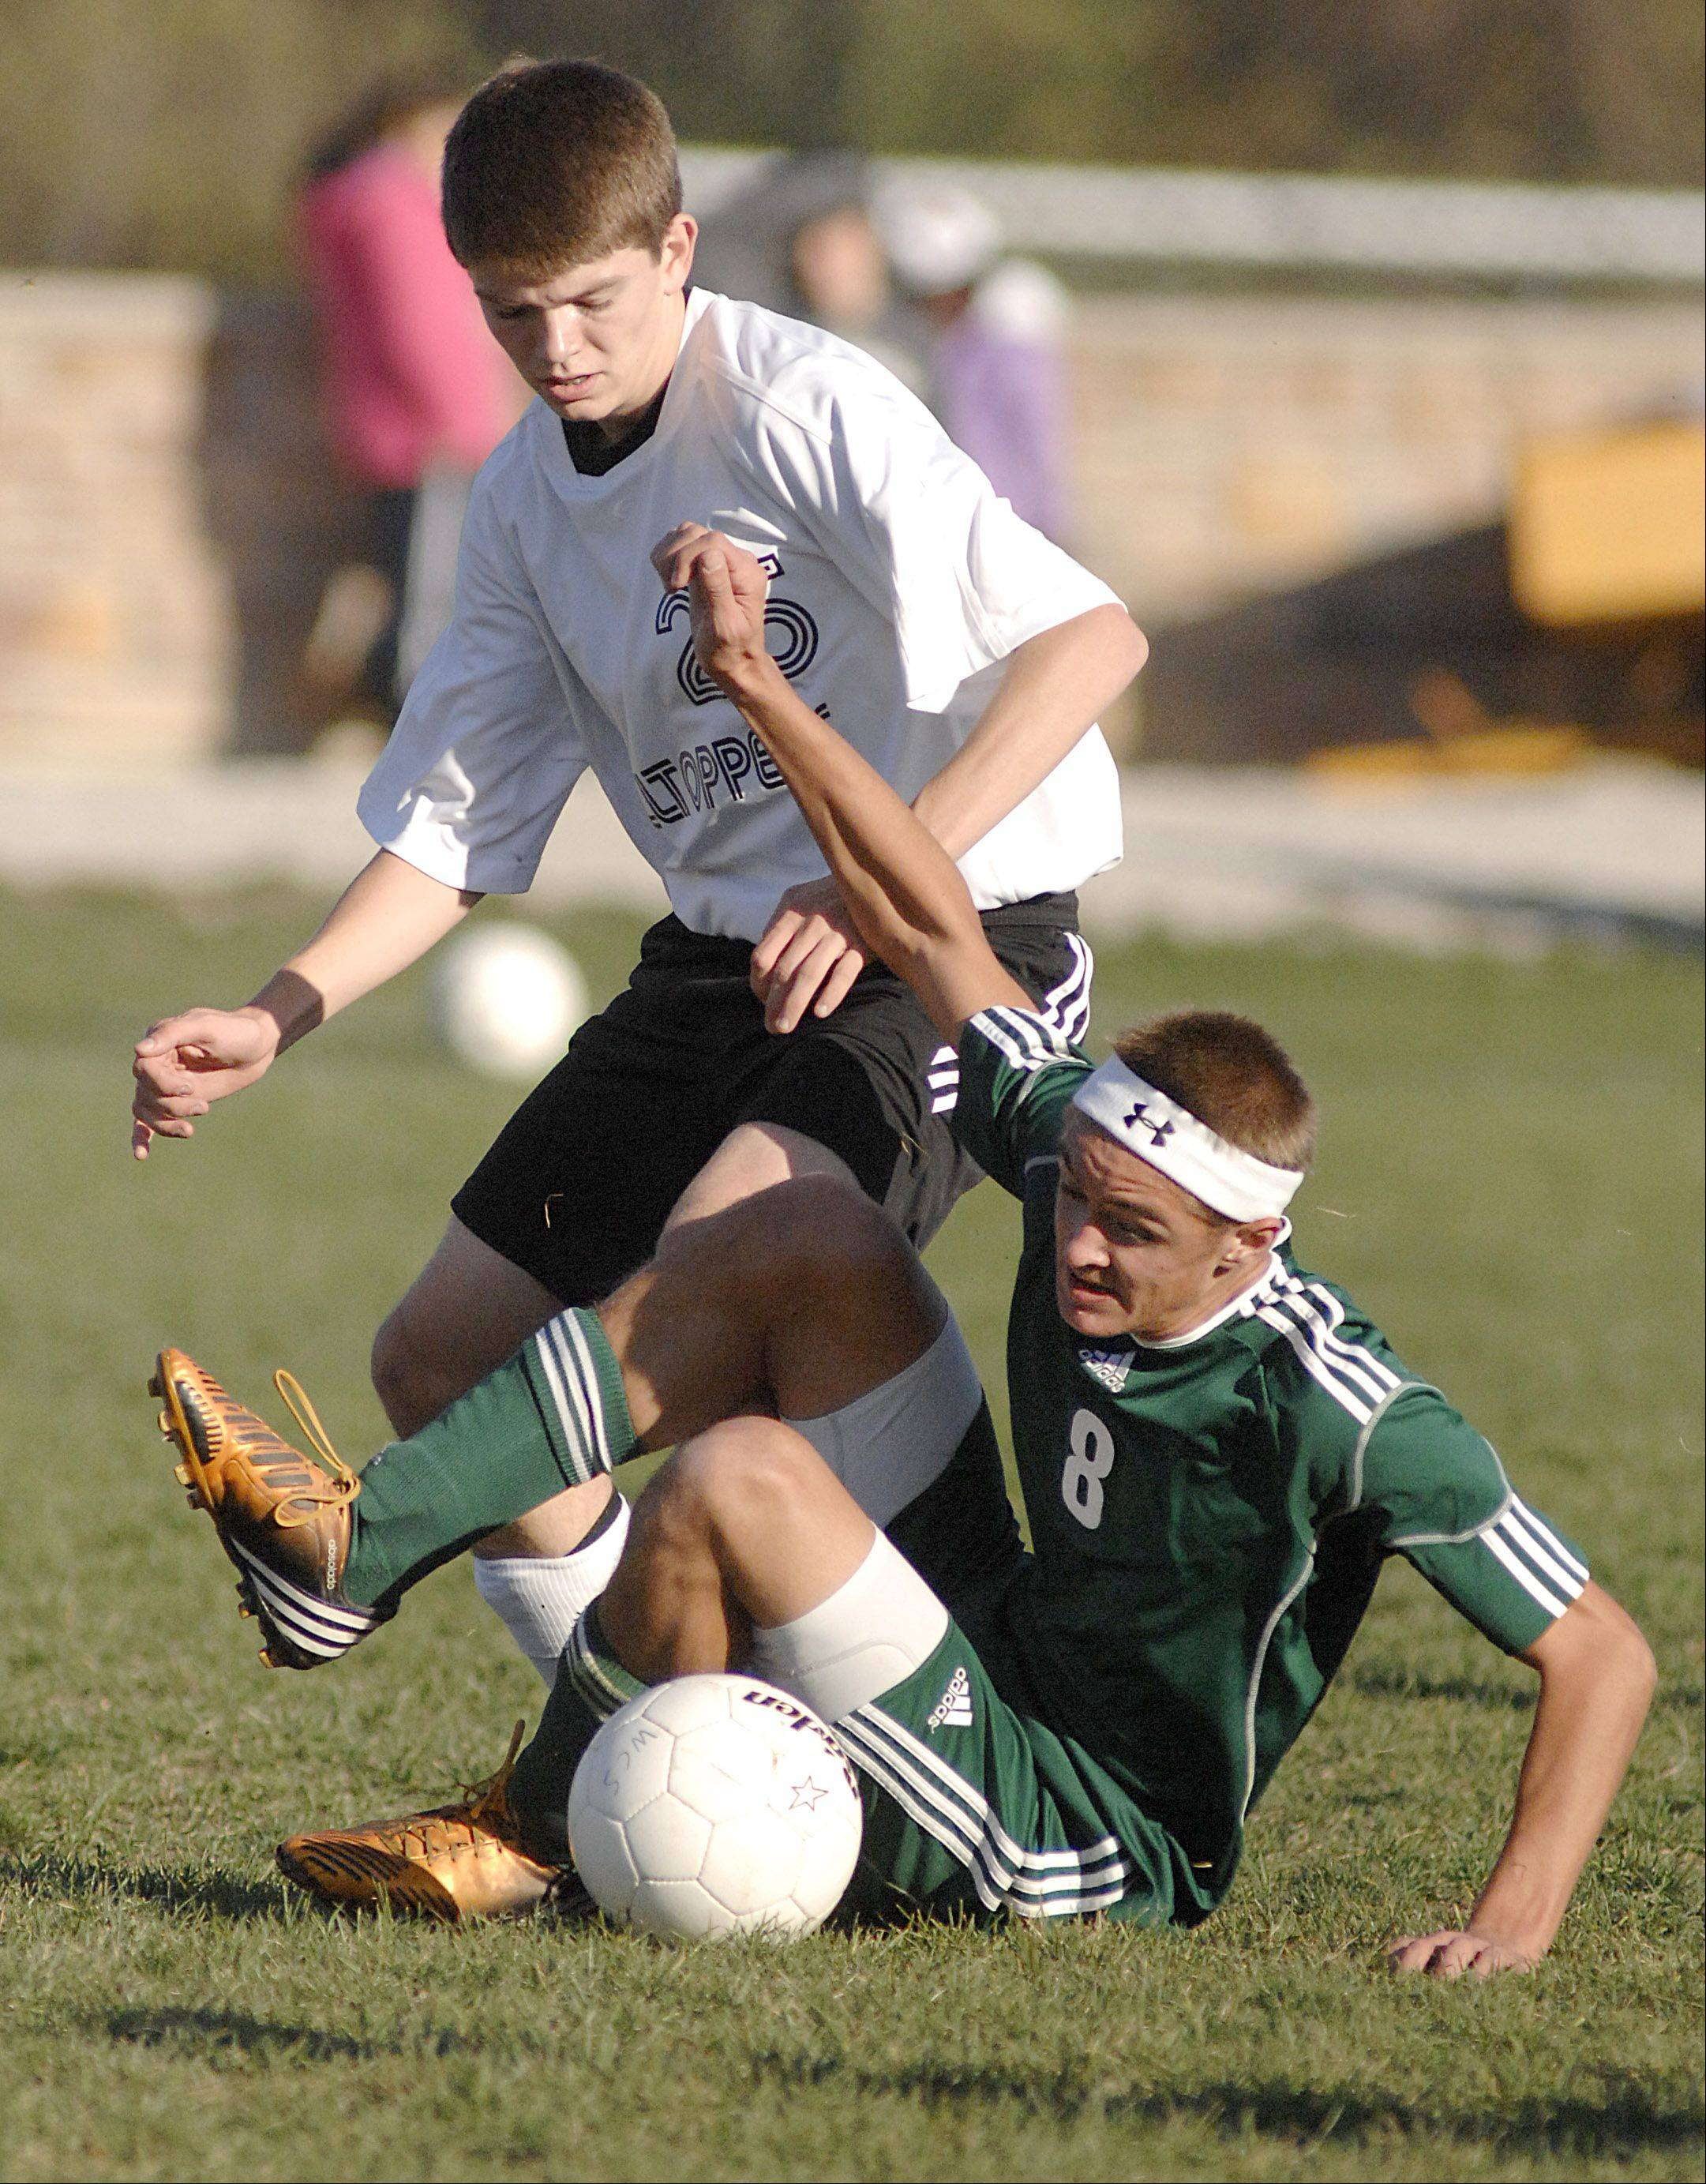 St. Edward's Johnny Shepherd tumbles as he and Elgin Academy's Billy Gracik battle for the ball in the first half on Wednesday.